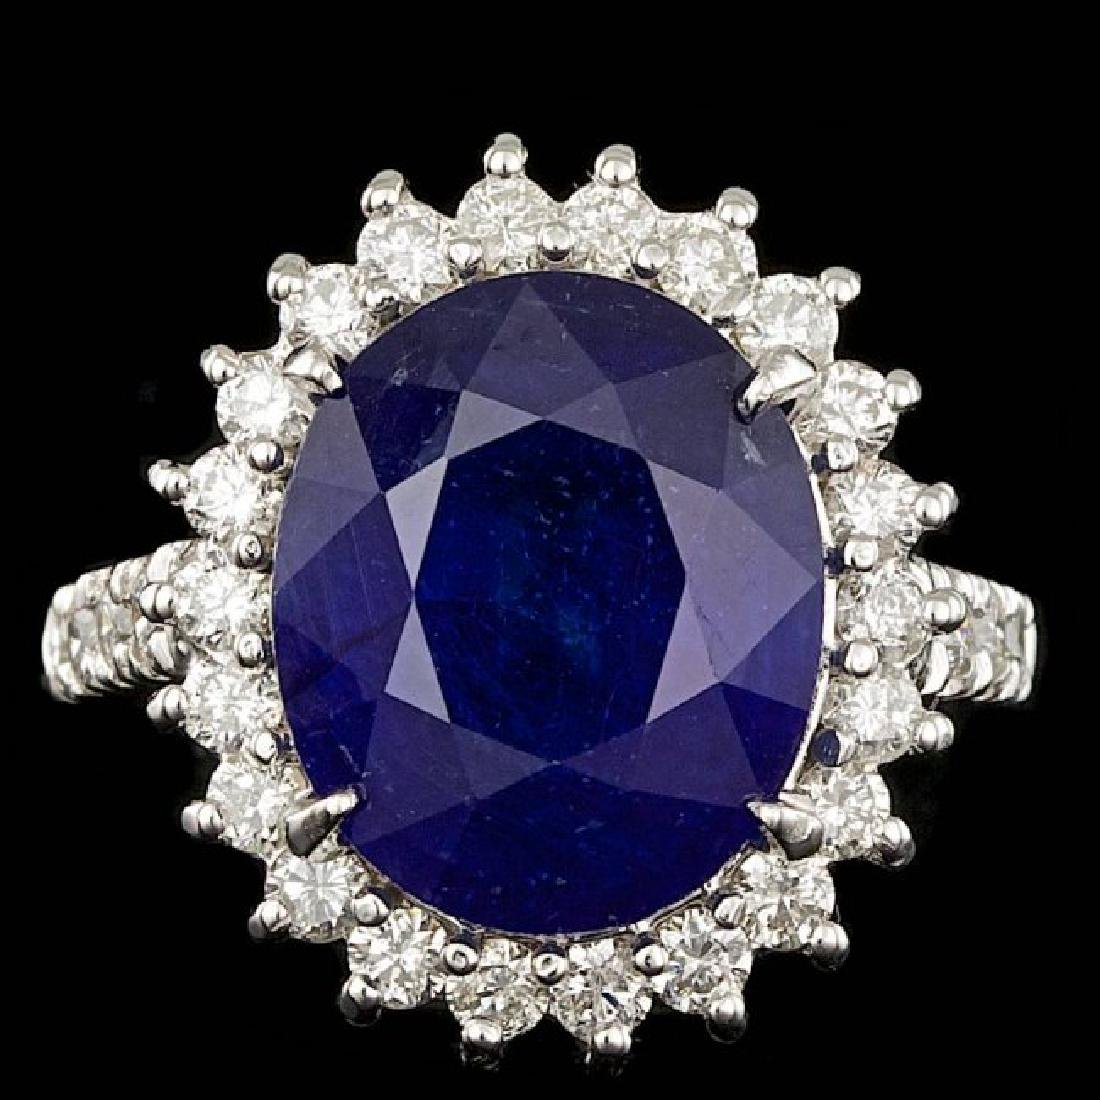 14k Gold 9.00ct Sapphire 1.15ct Diamond Ring